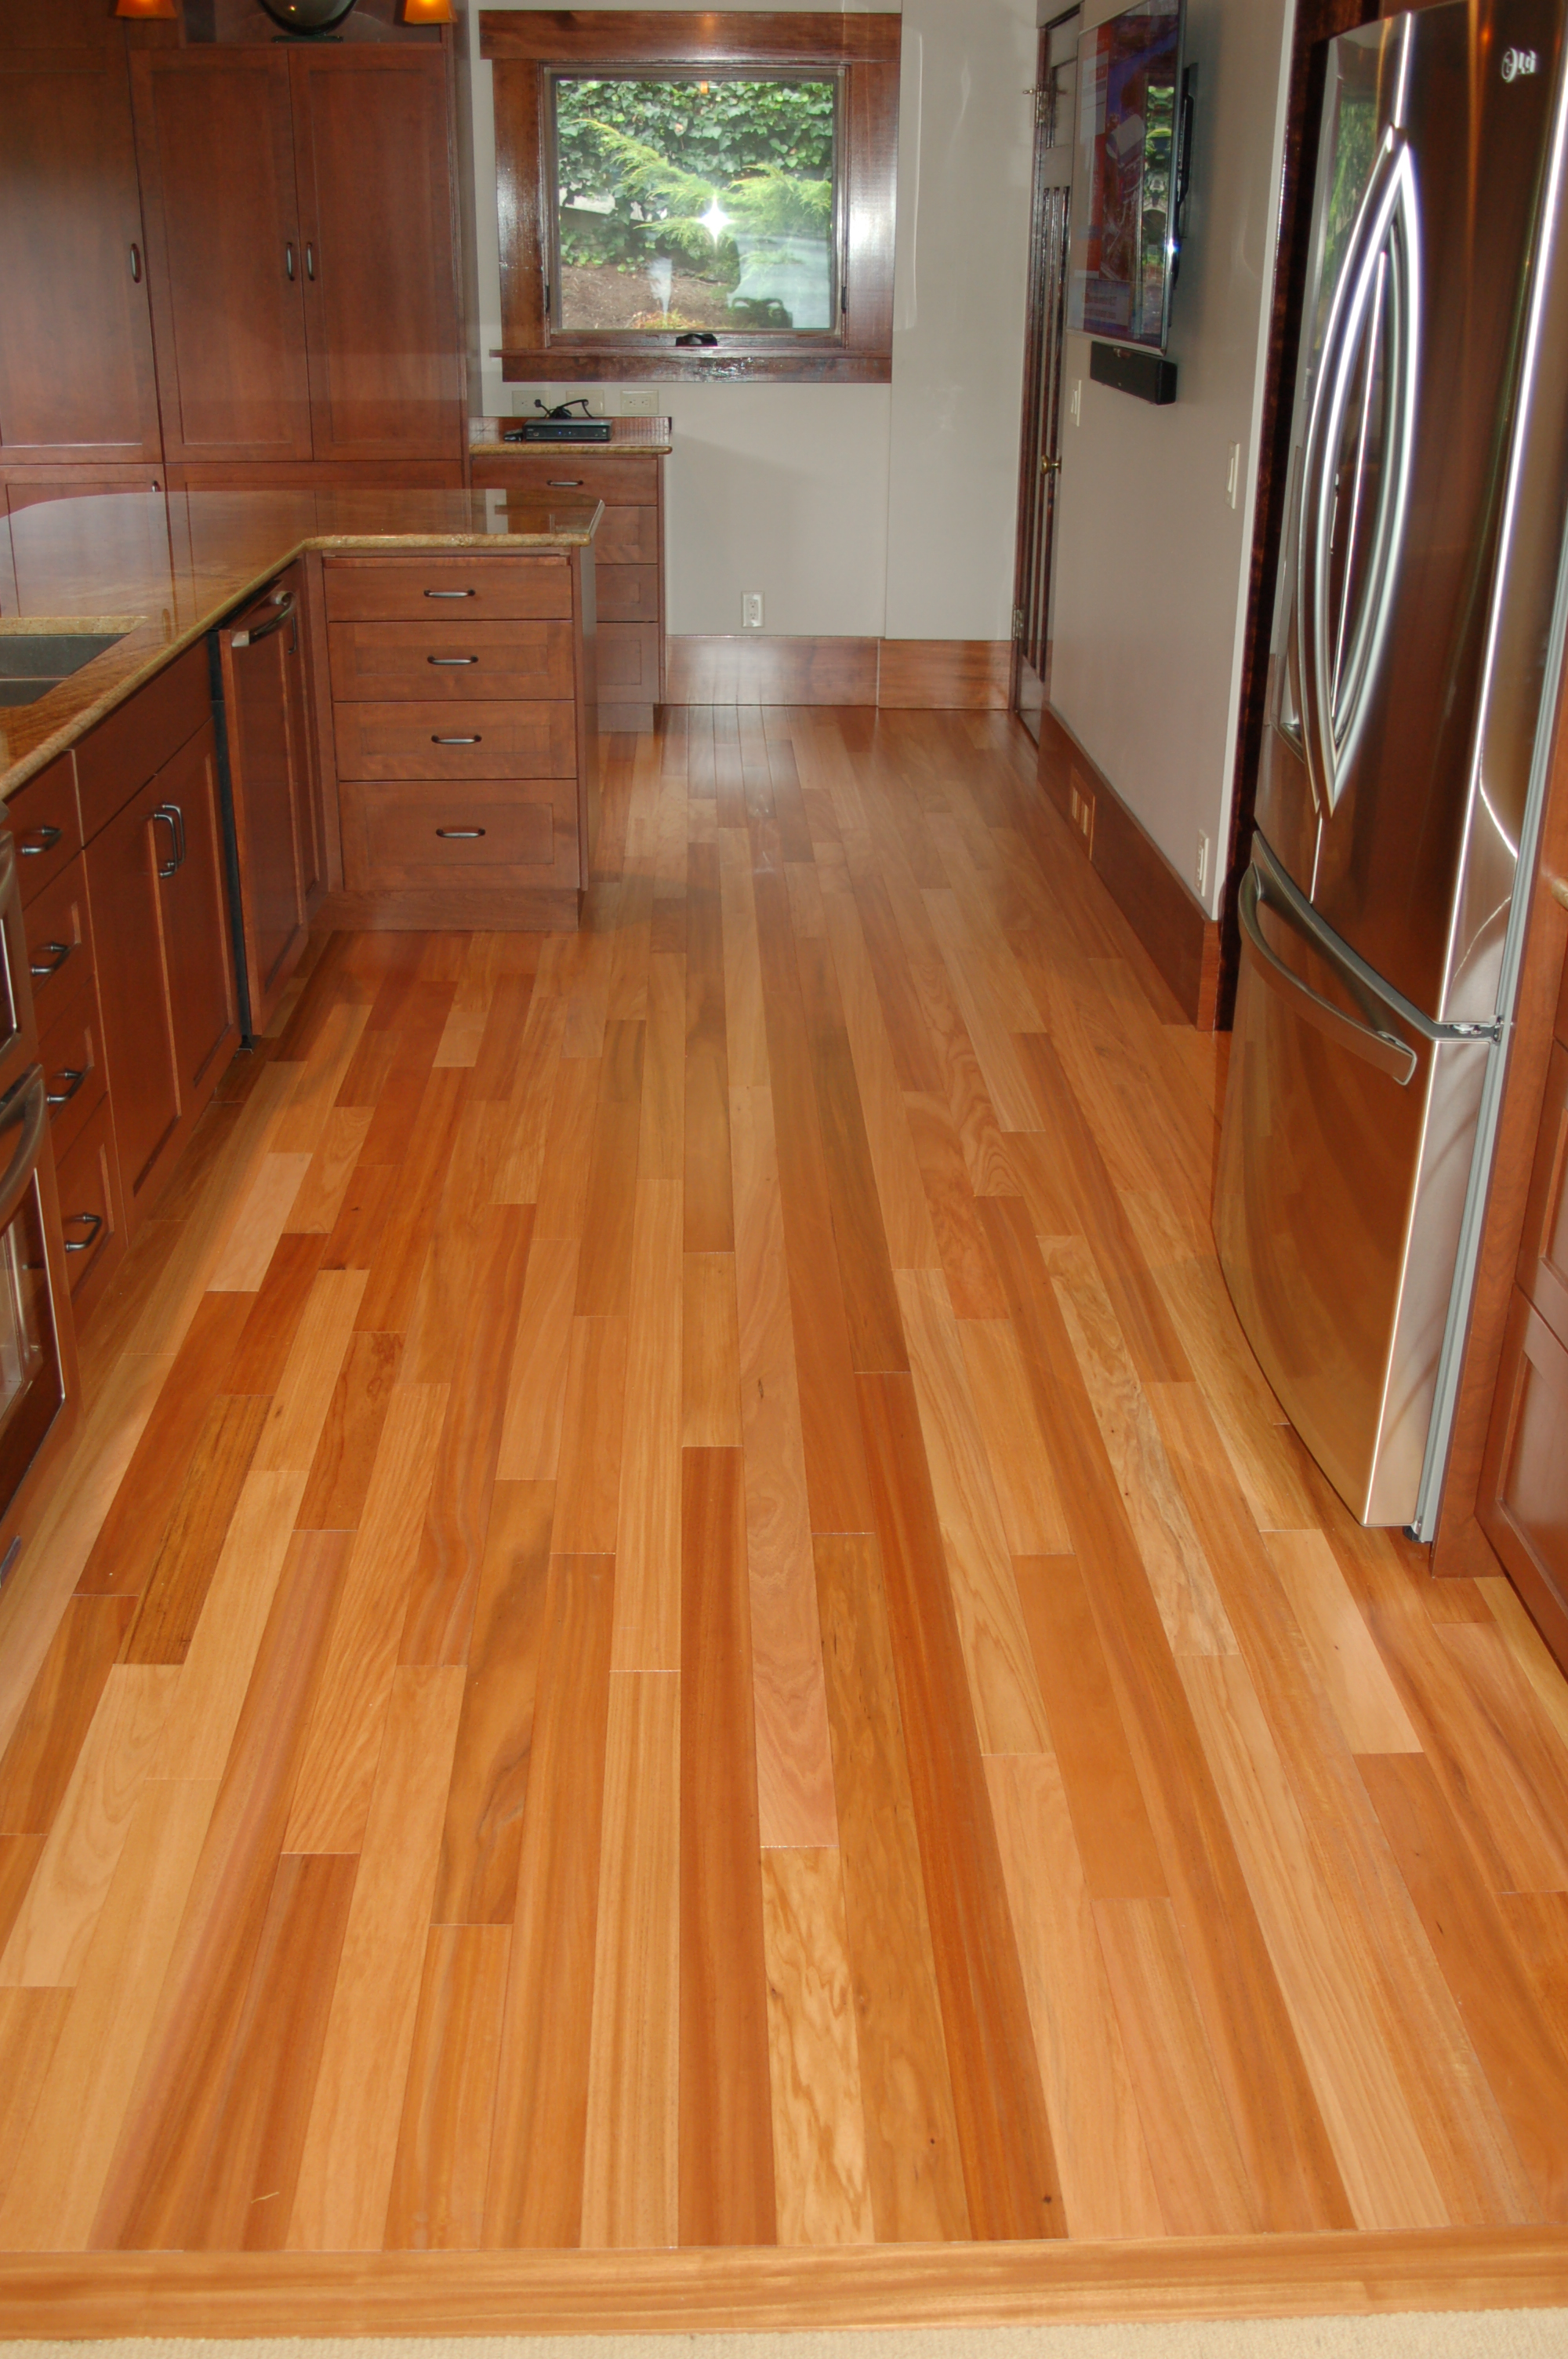 kitchen remodel part ii of iv choosing the best flooring best kitchen flooring Kitchen remodel Part II of IV Choosing the best flooring